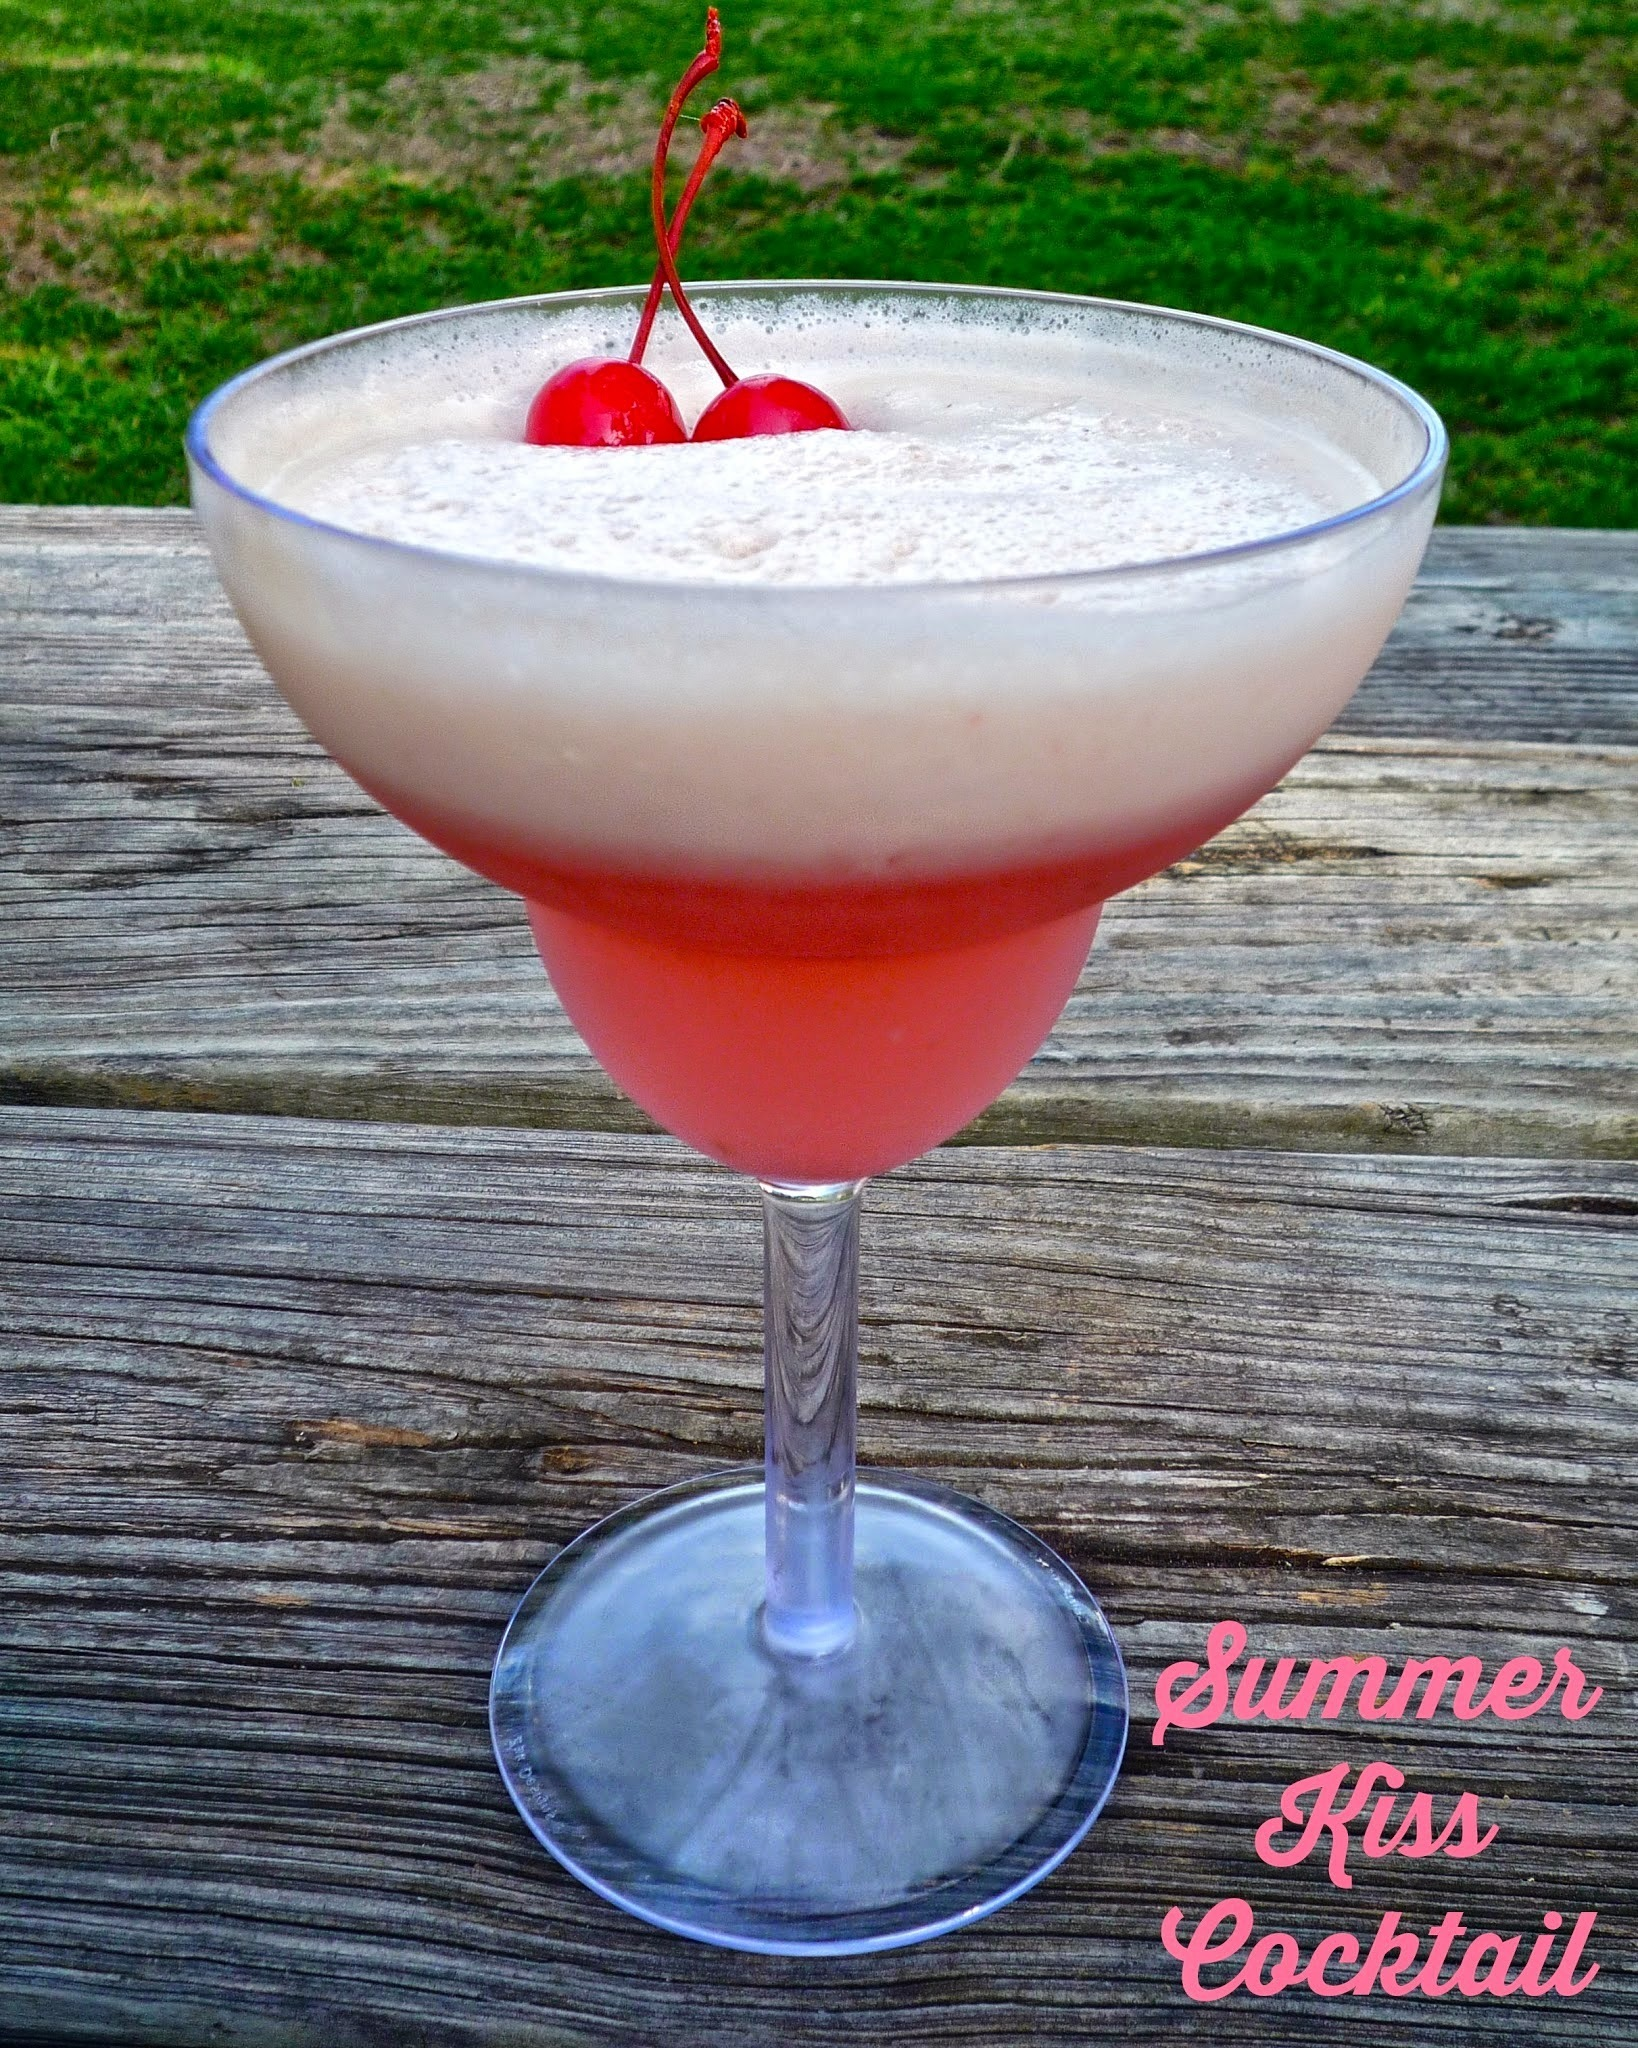 Kicking Off Summer with a Summer Kiss Cocktail...and a Pina Colada Fizz Mocktail!